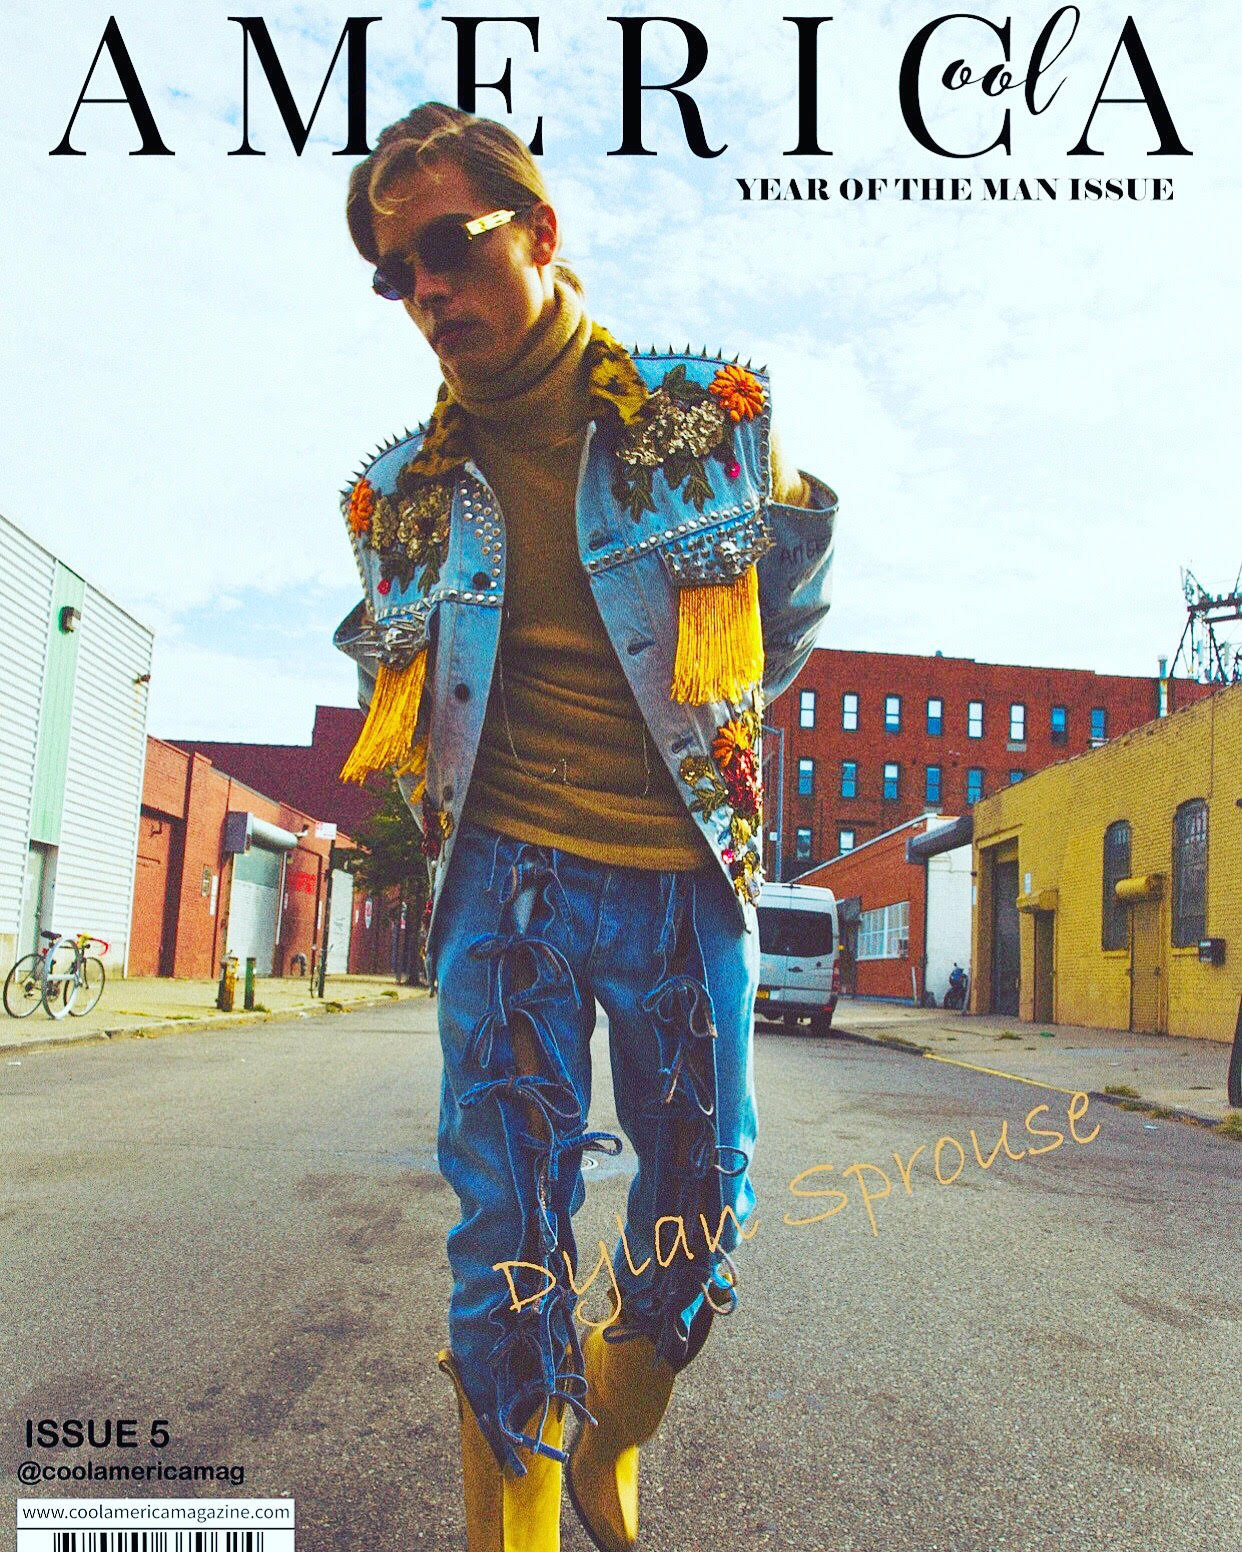 Cover Story w/ Dylan Sprouse (Styled by Mickey Freeman)